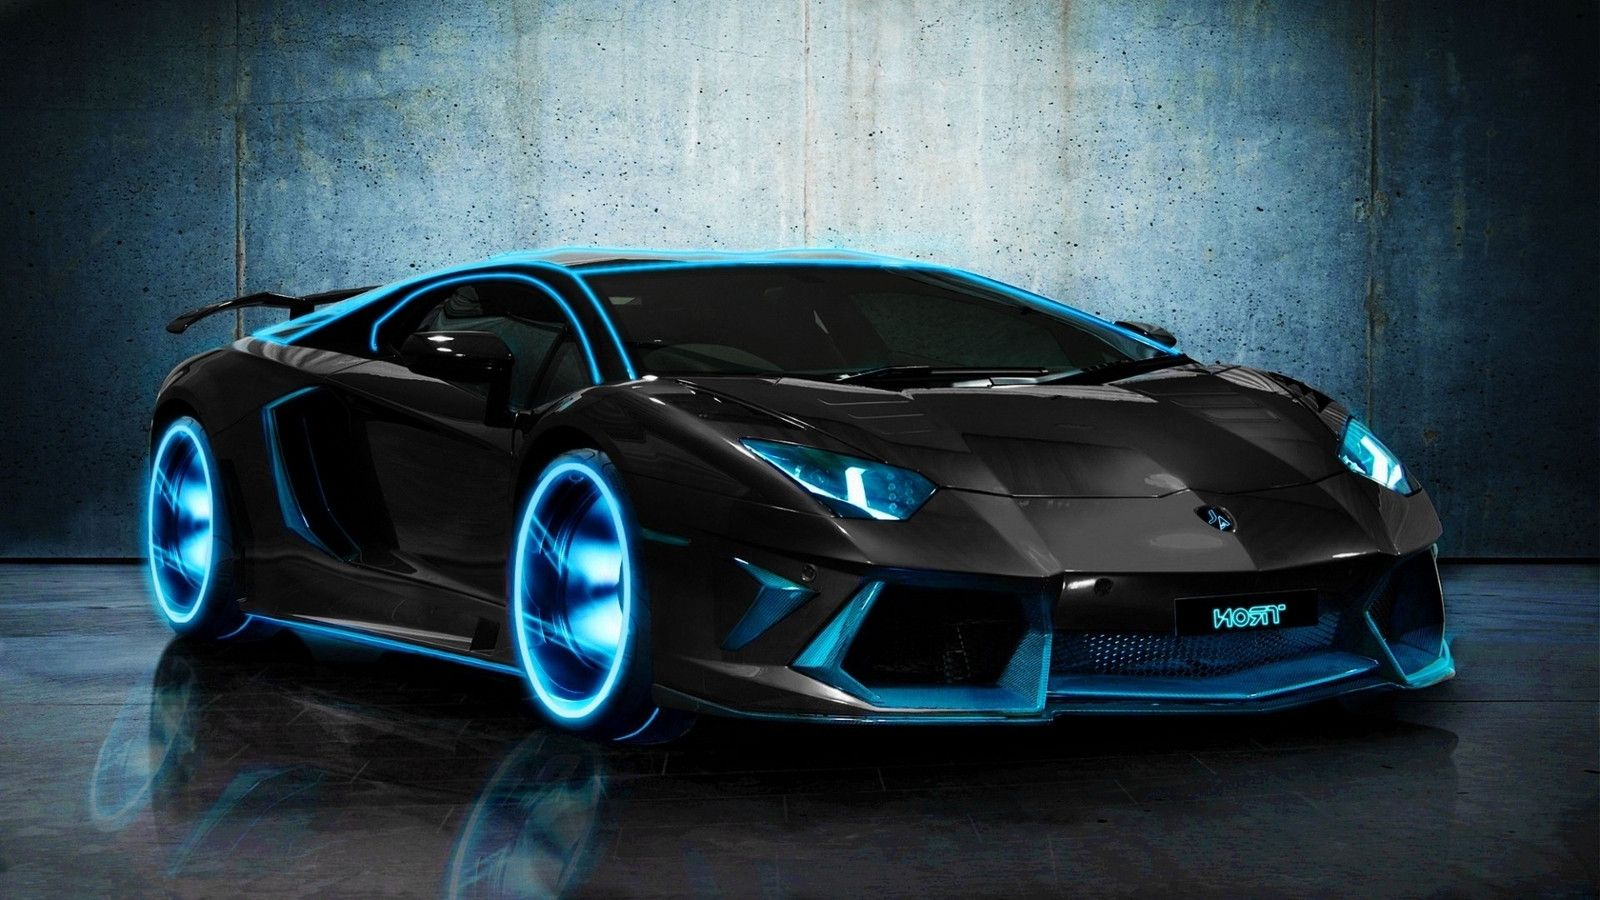 Lamborghini Aventador Wallpaper High Resolutio 3645 Wallpaper 1600x900